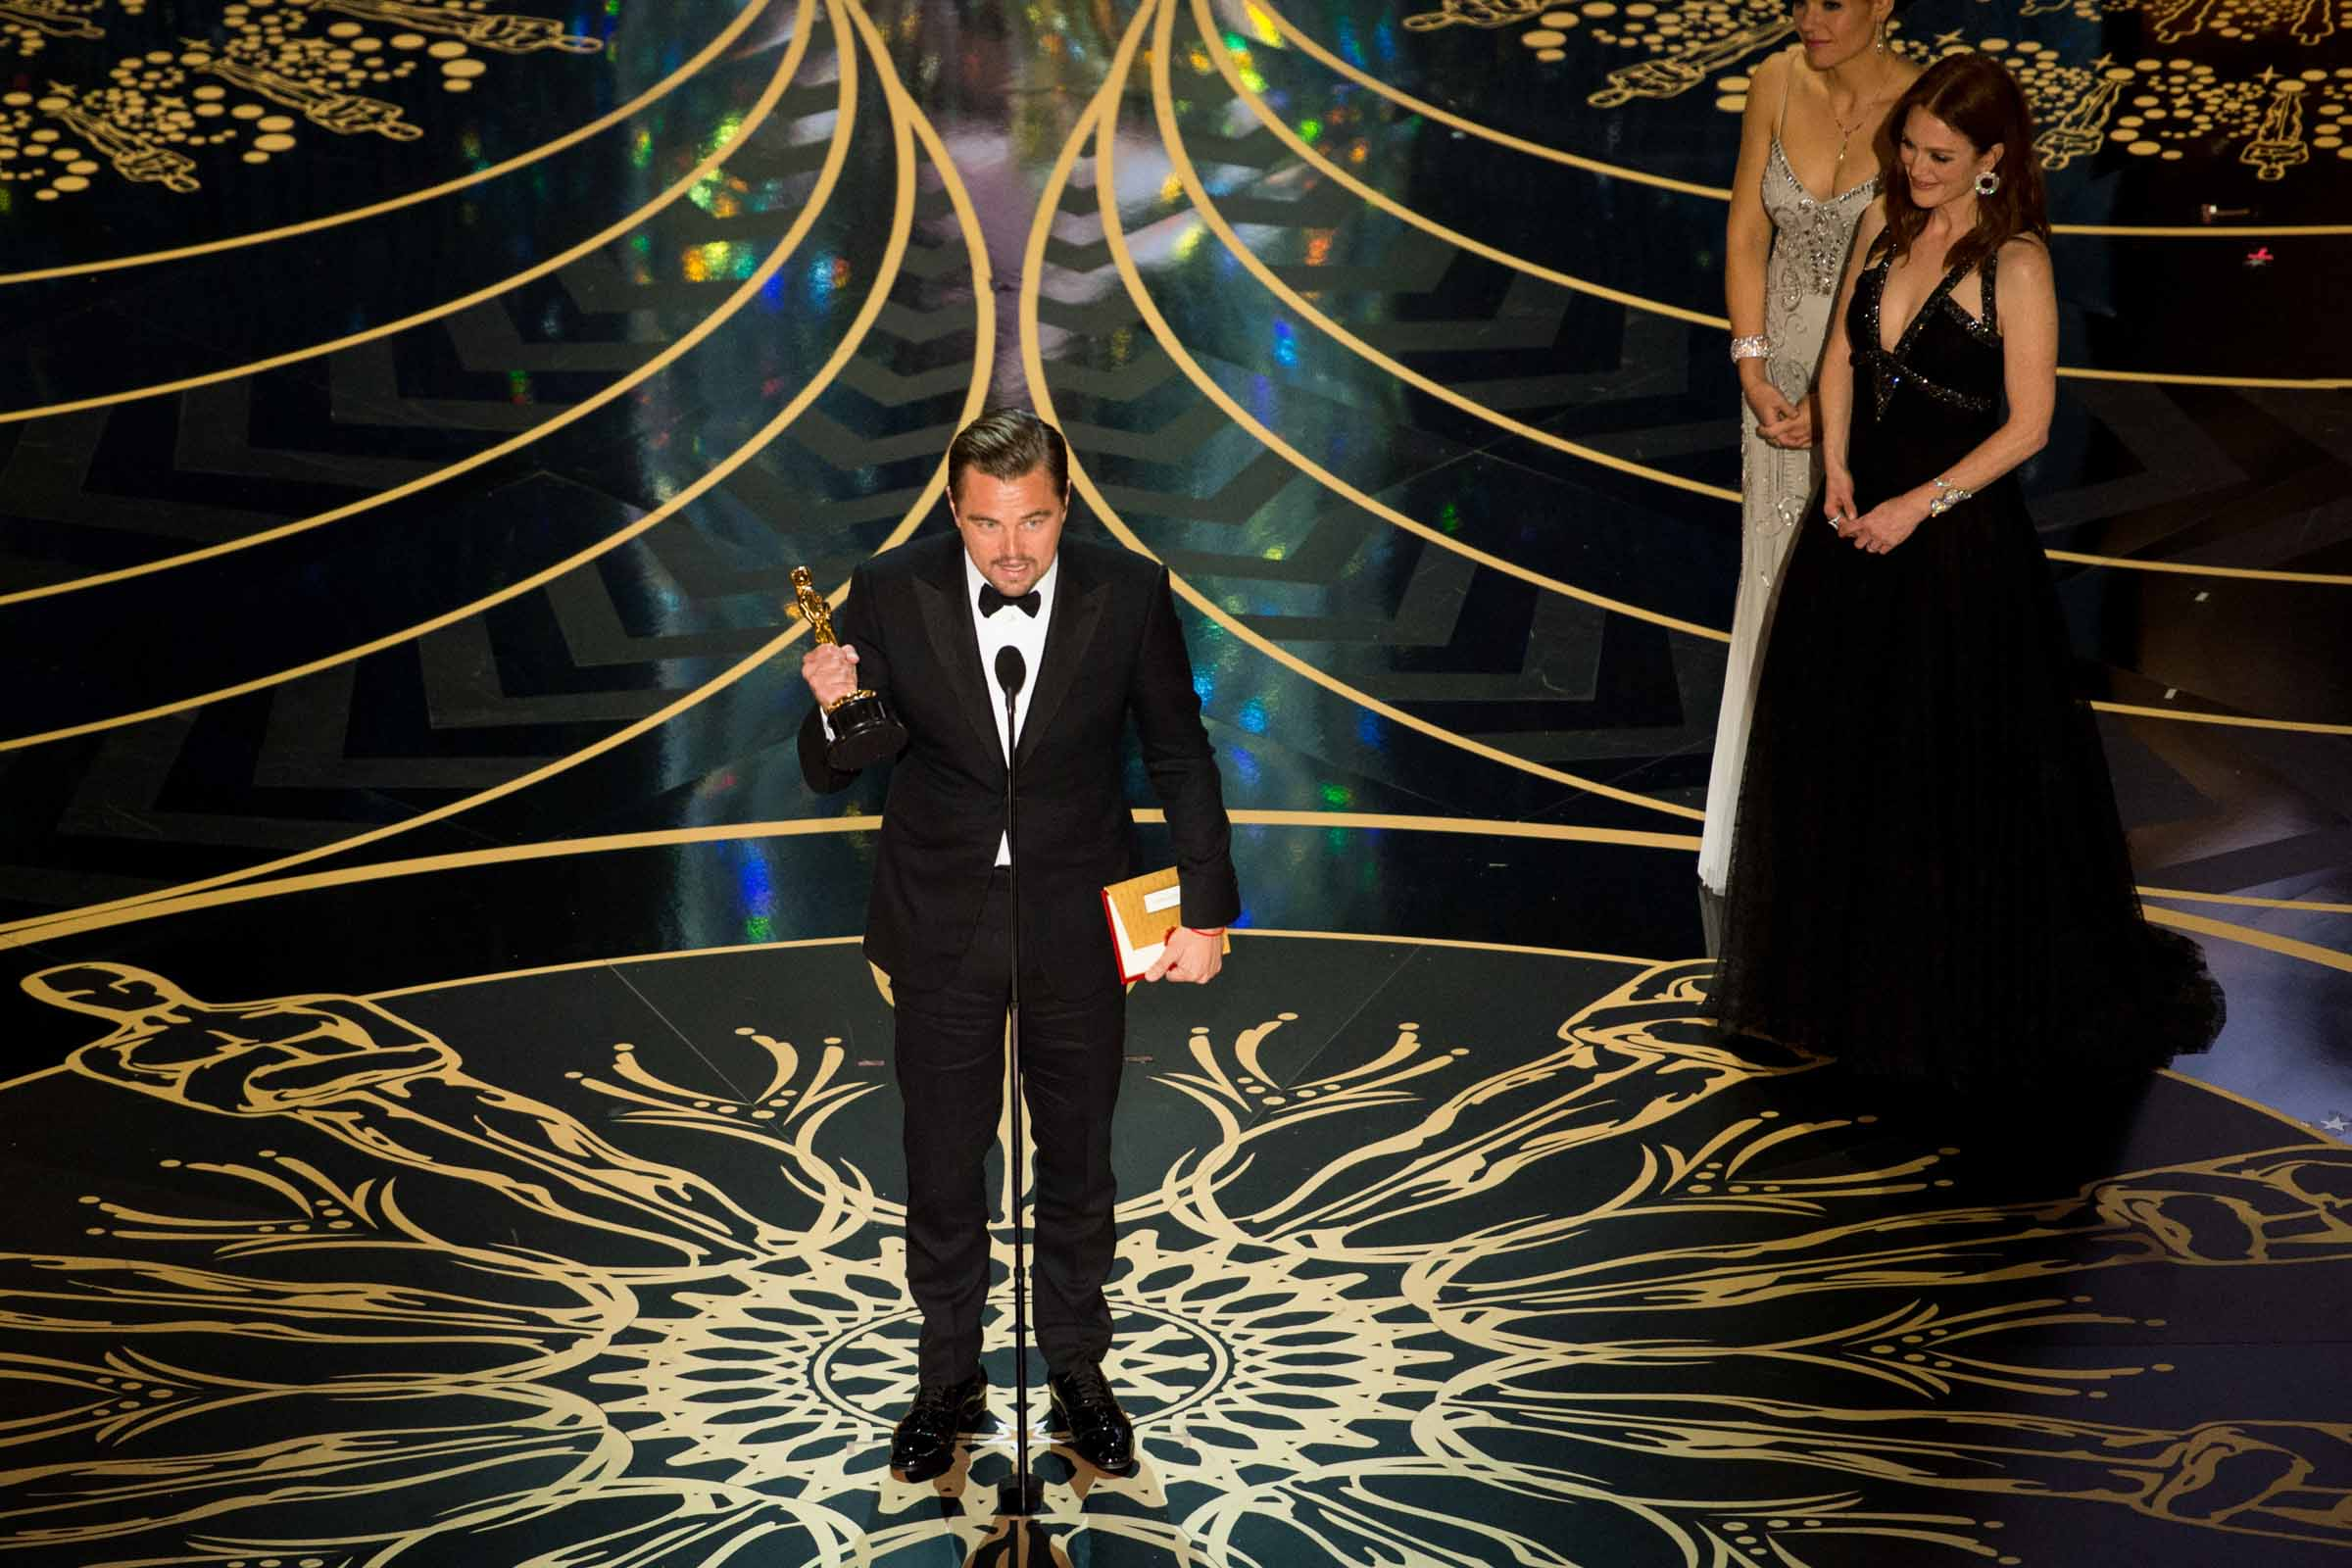 "Leonardo DiCaprio accepts the Oscar® for Performance by an Actor in a Leading Role, for work on ""The Revenant"", from Julianne Moore during the live ABC Telecast of The 88th Oscars® at the Dolby® Theatre in Hollywood, CA on Sunday, February 28, 2016. Photo Credit: Valerie Durant / ©A.M.P.A.S."